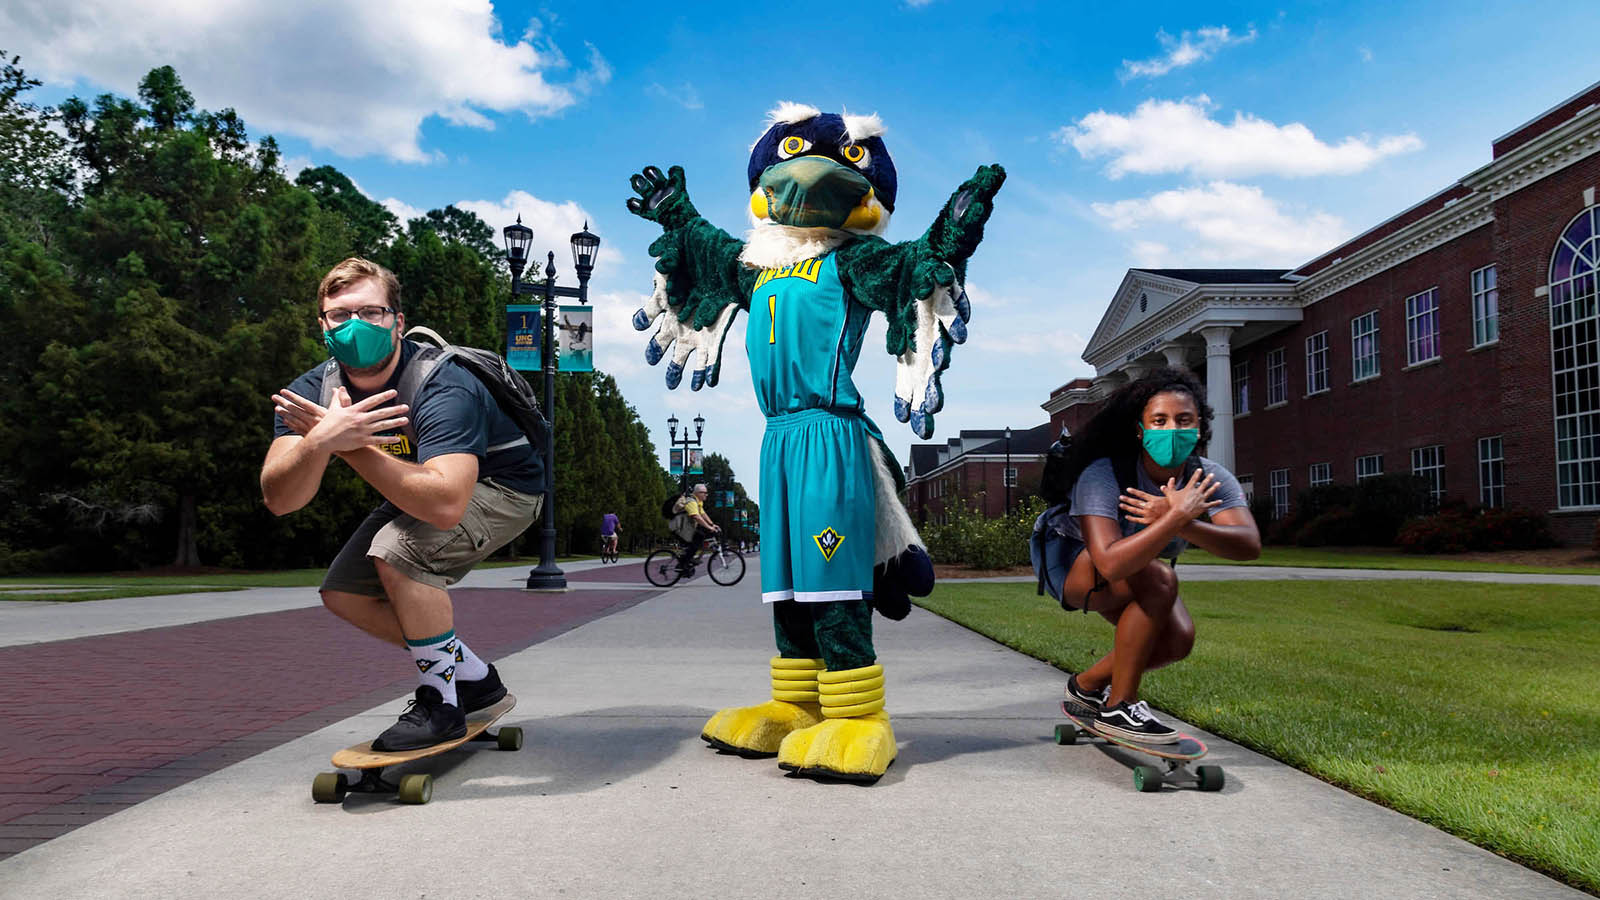 Sammy C. Hawk (center) is surrounded by two crouching skateboarders on Chancellor's Walk.